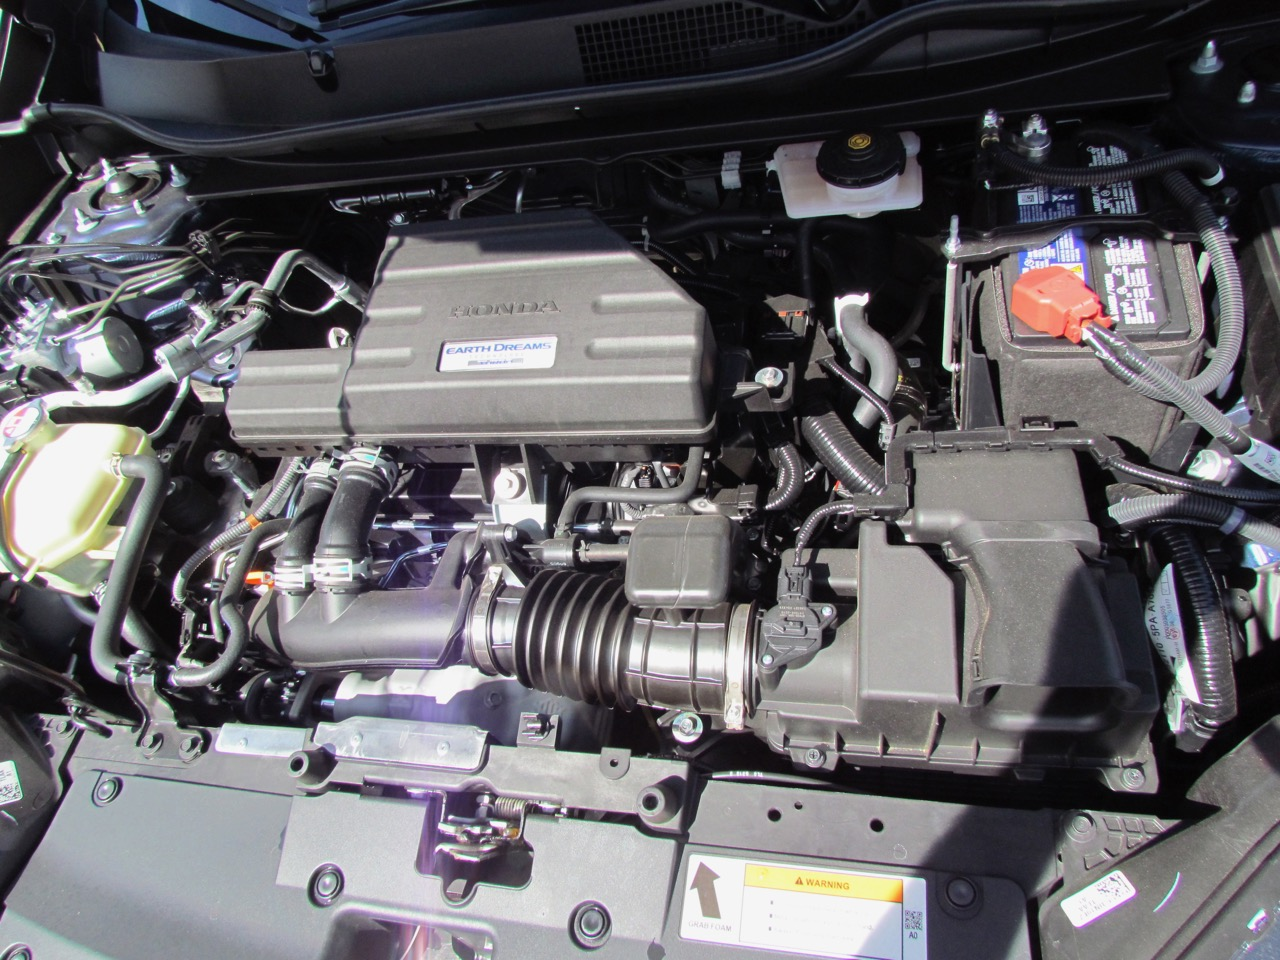 The turbocharged 1.5-liter four-cylinder engine